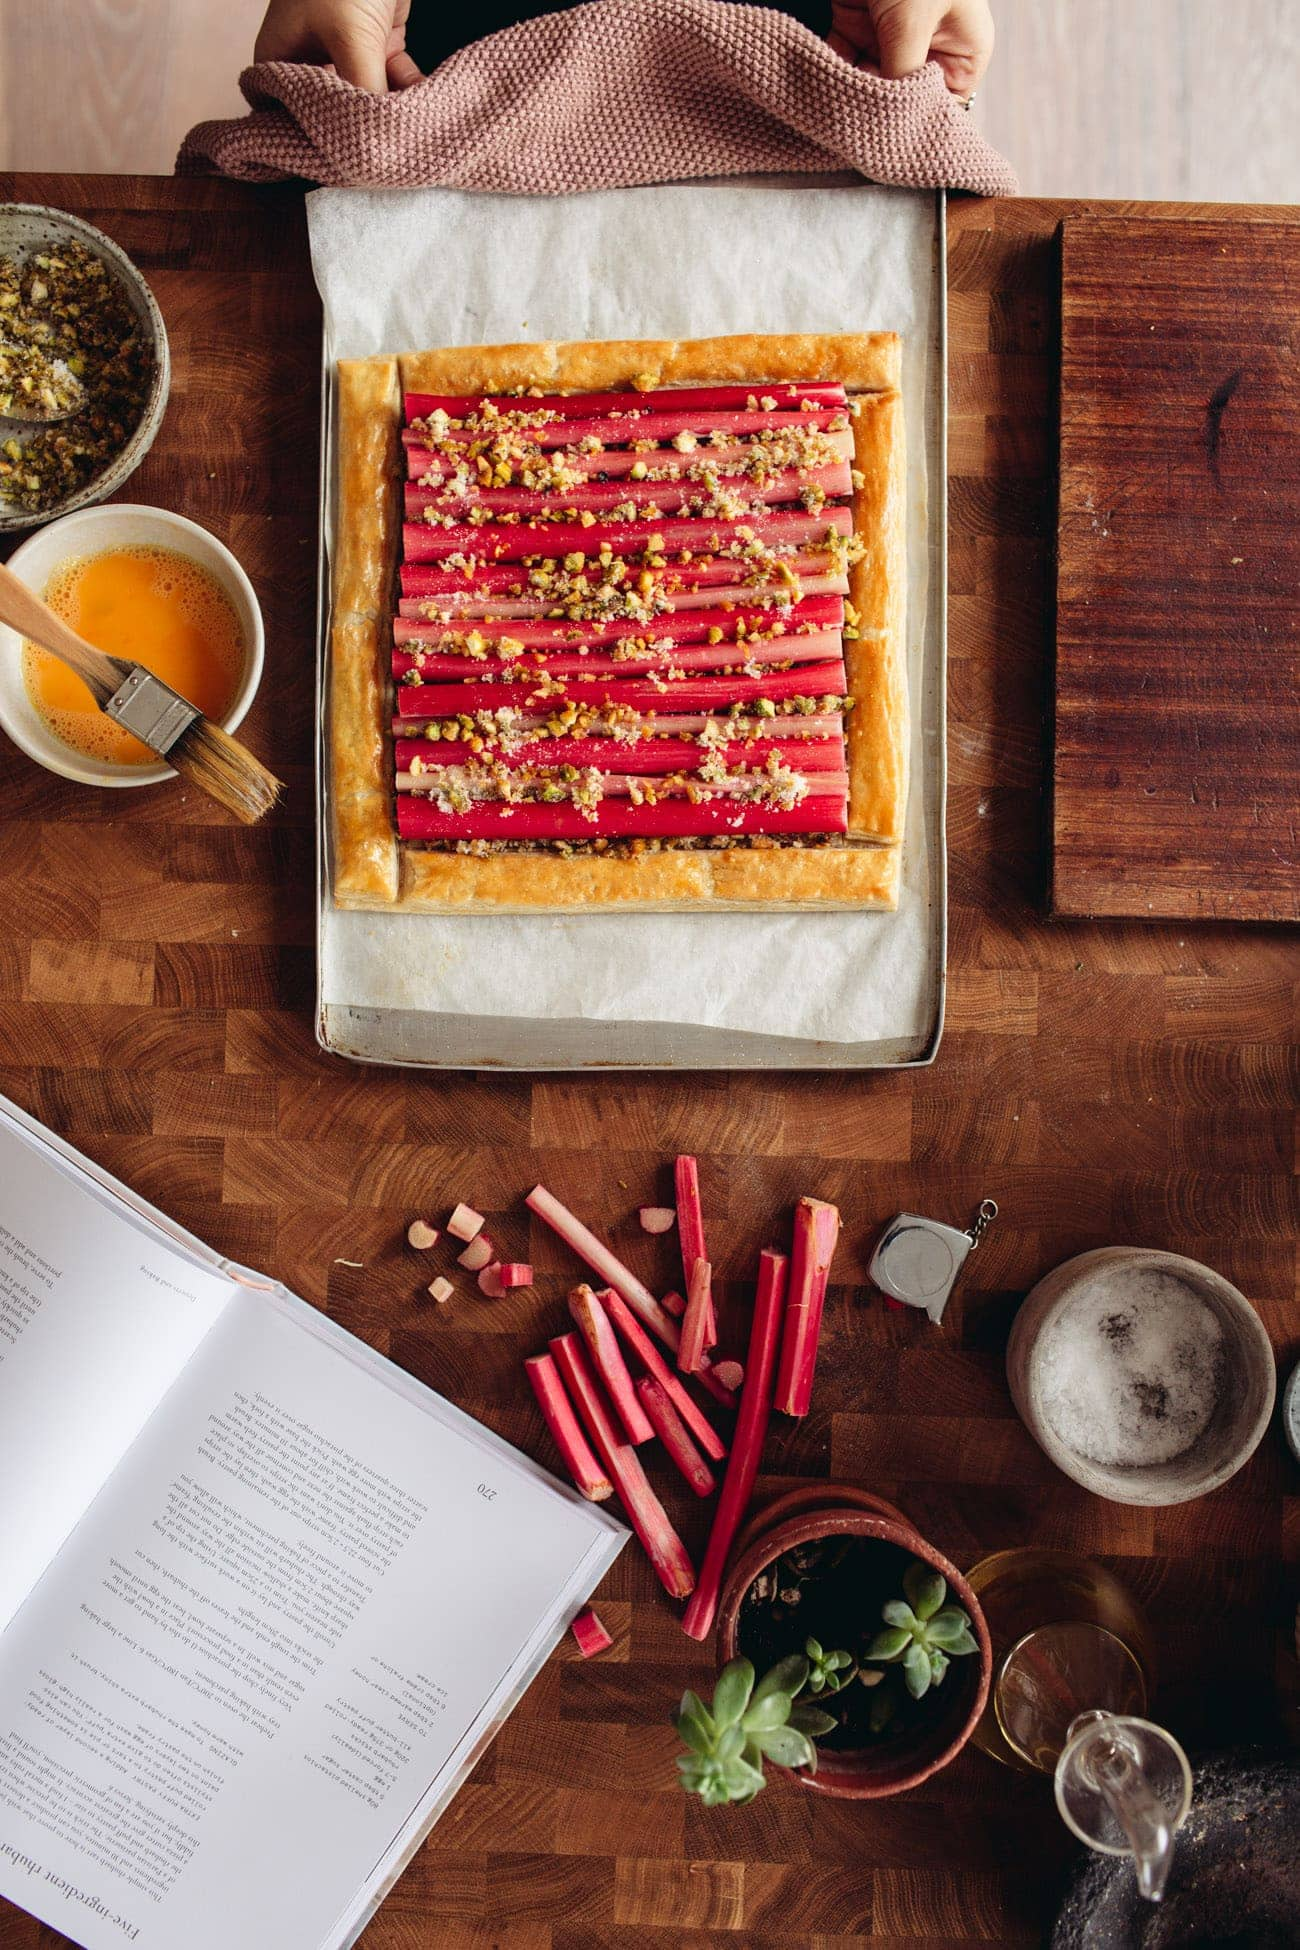 Simple Rhubarb Tart on a tray on the counter